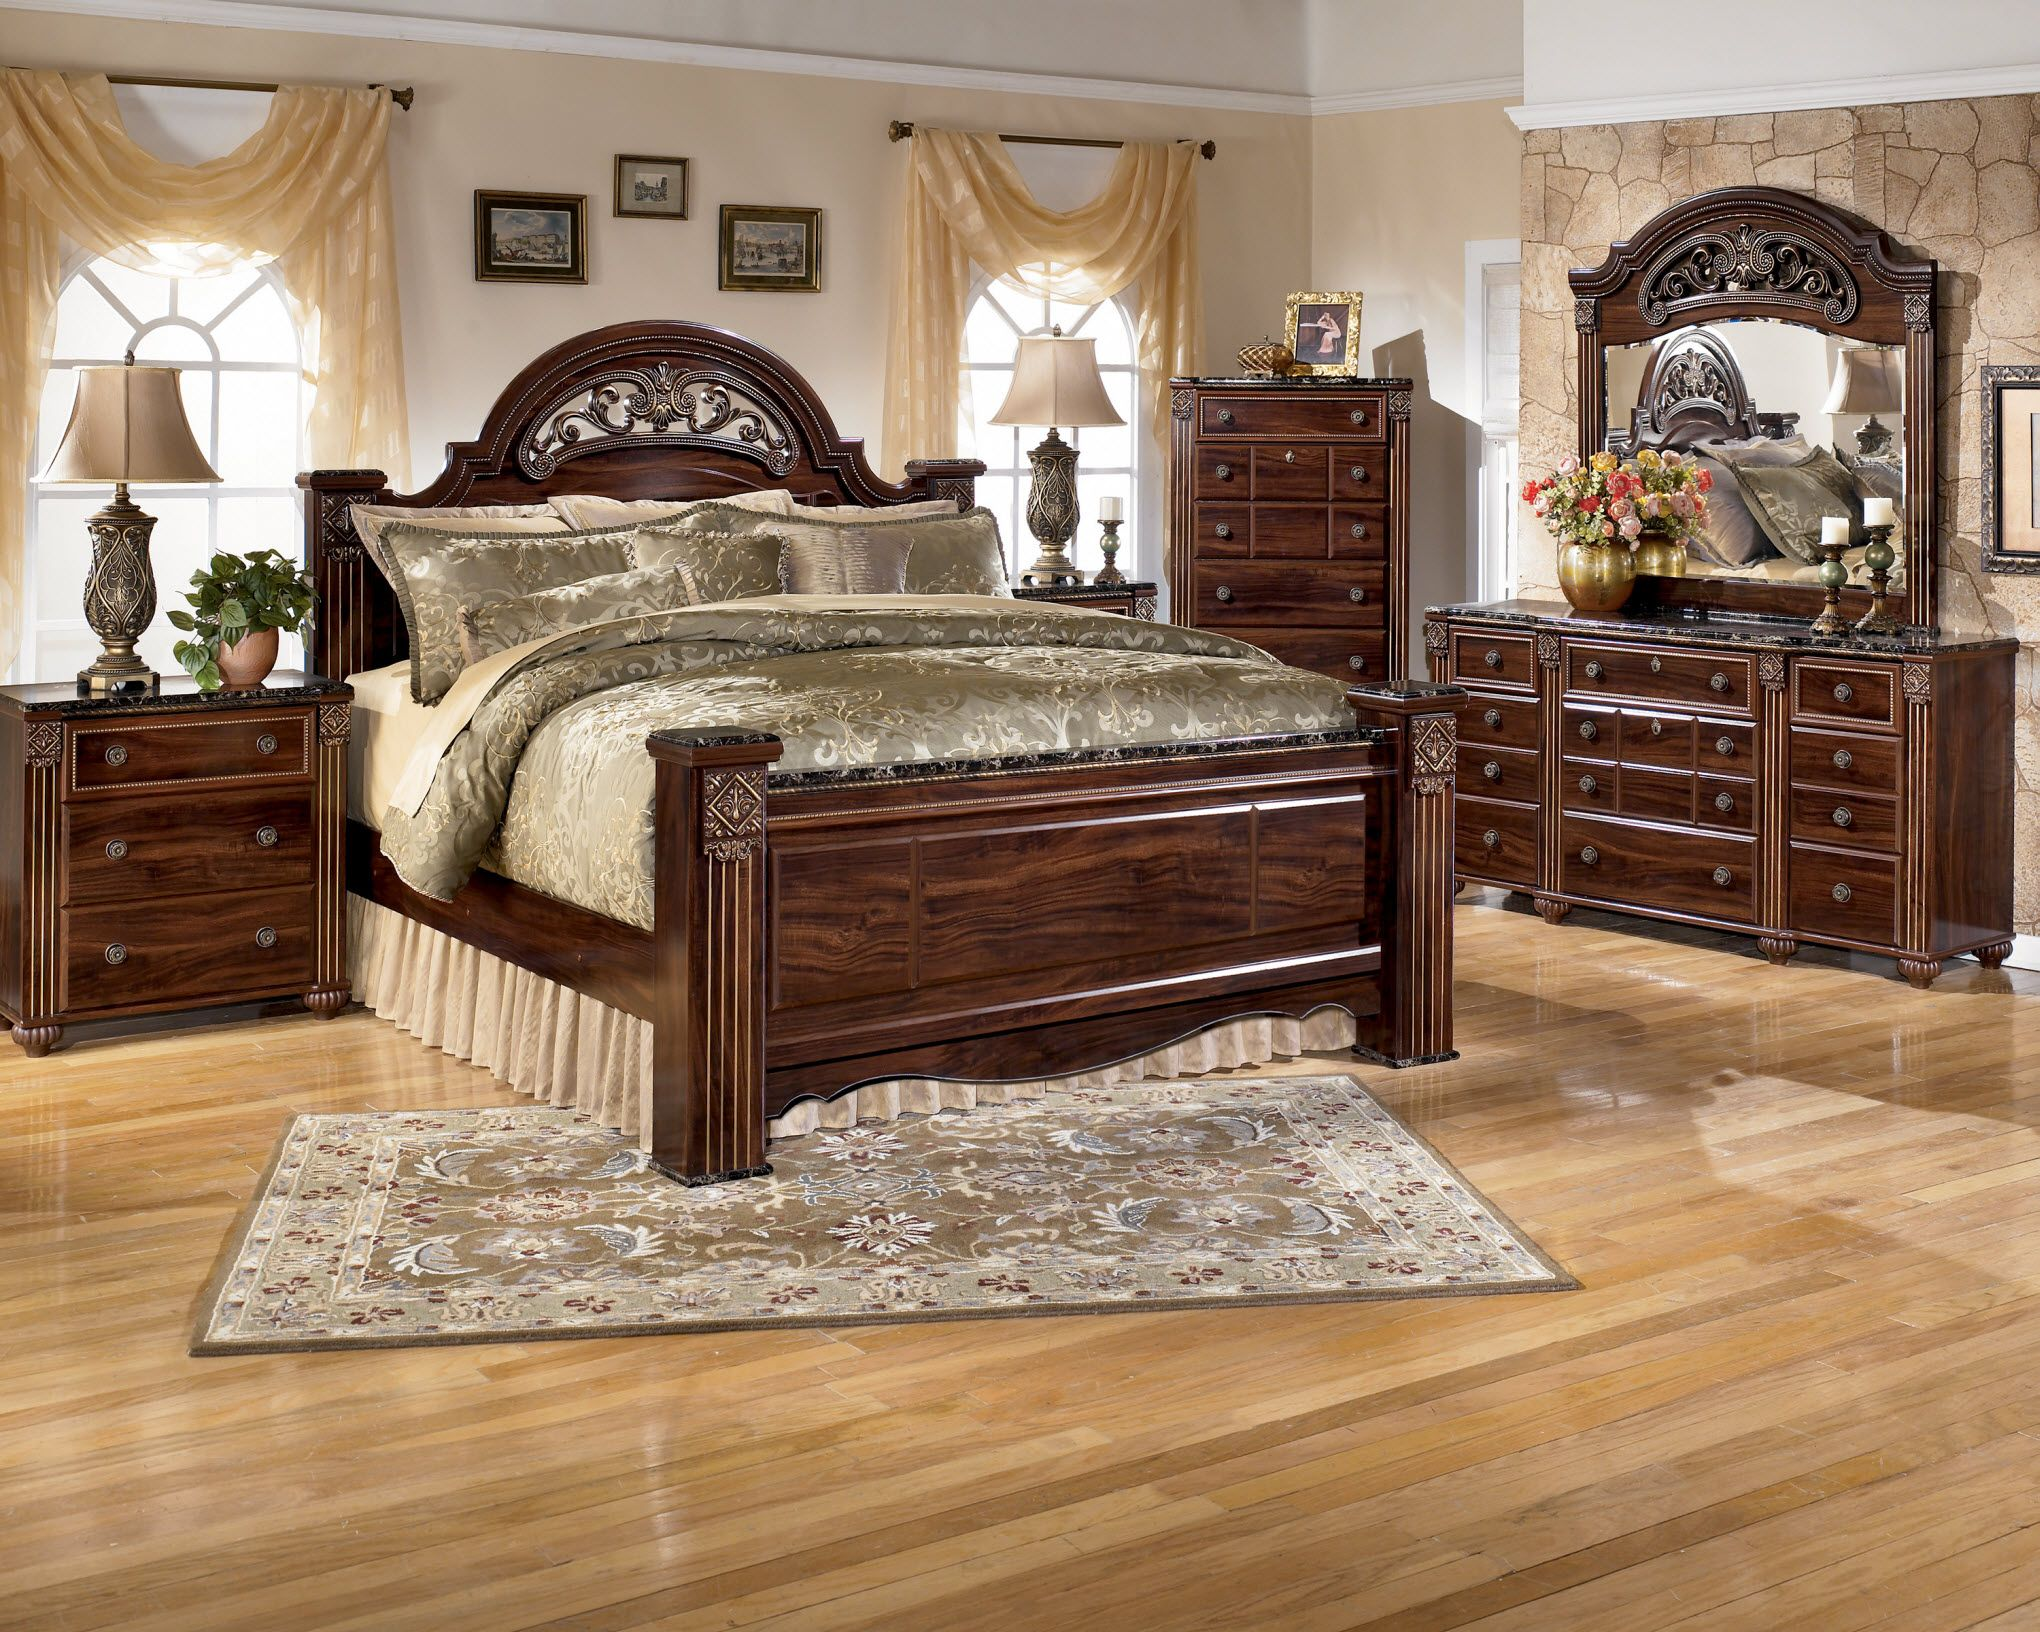 breathtaking-bedroom-furniture-set-and-nice-curtains-with-wood